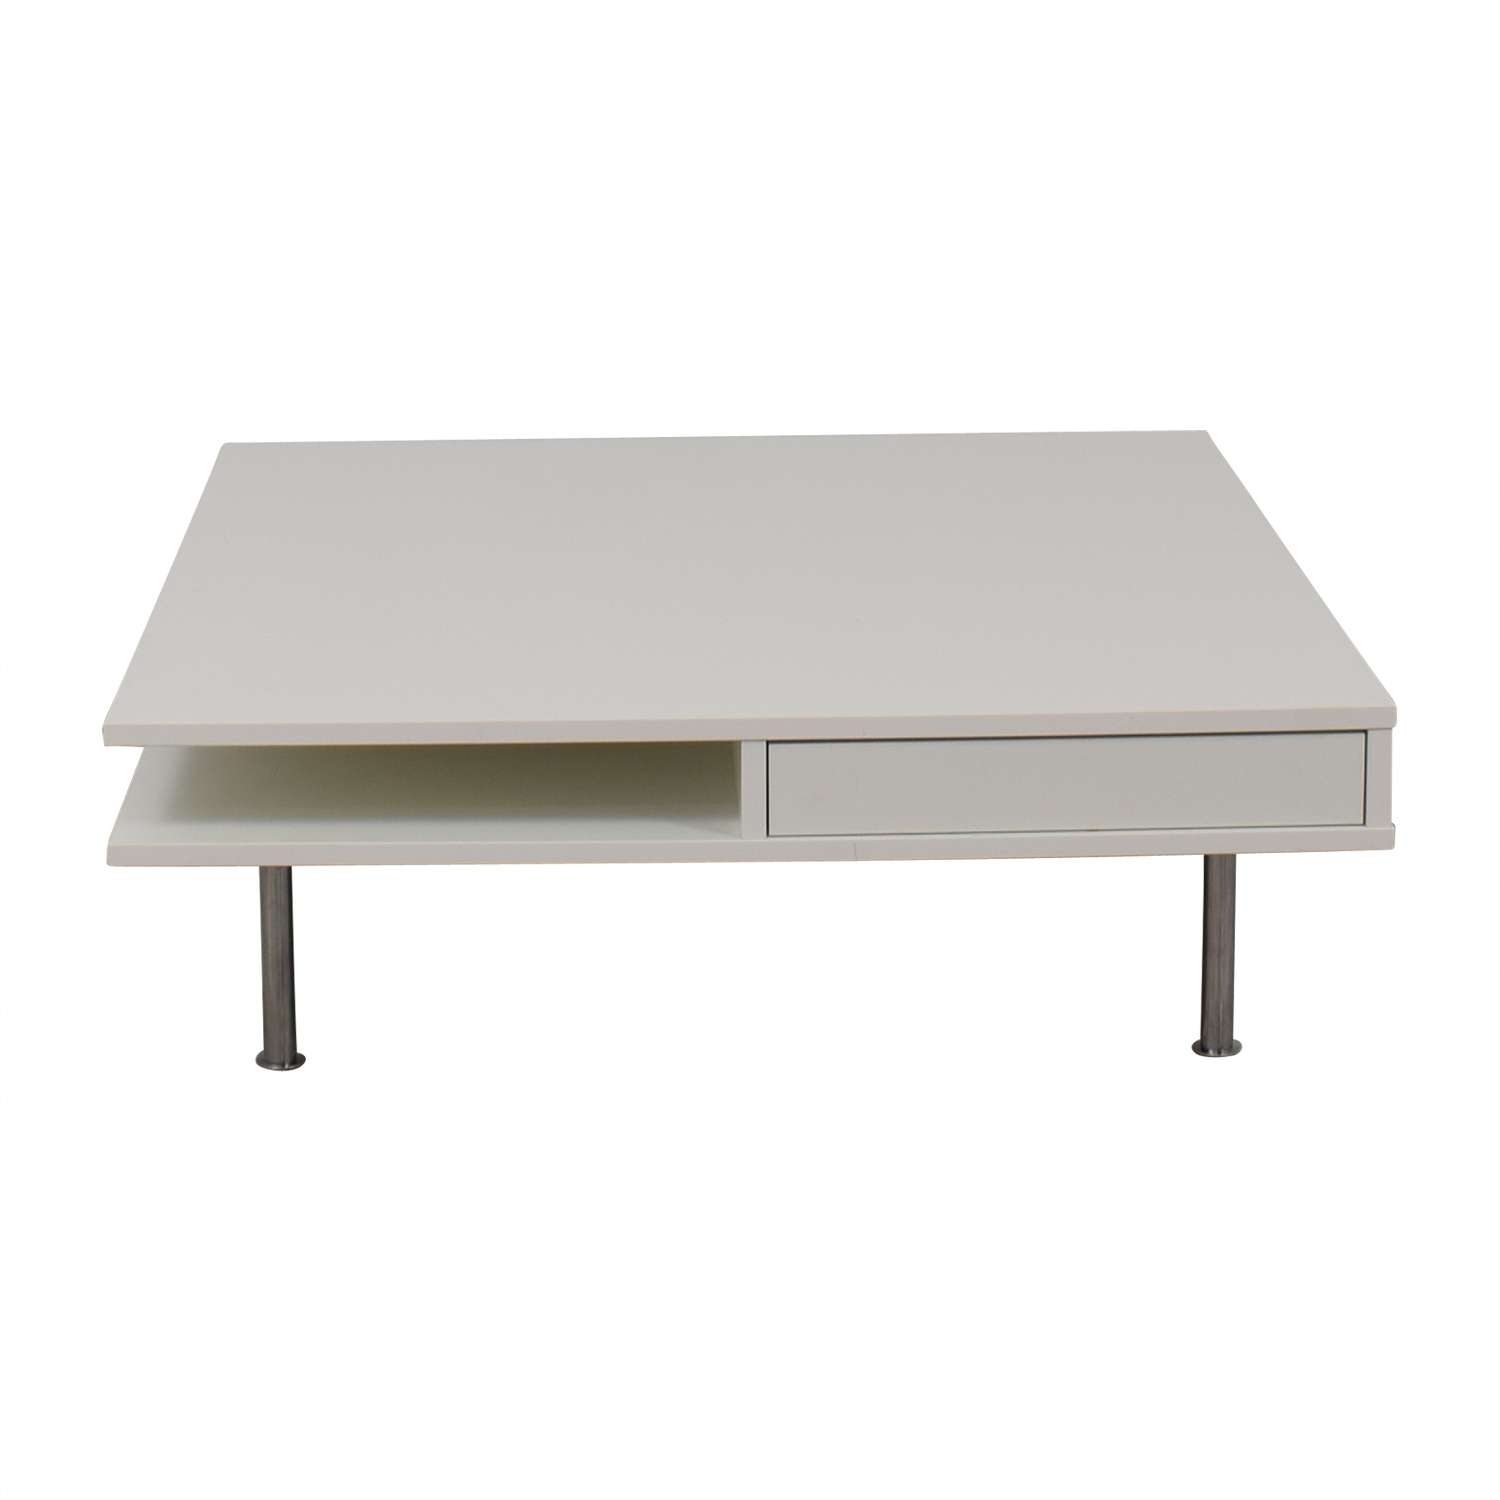 [%Widely Used Modern Coffee Tables Inside 62% Off – White Modern Coffee Table / Tables|62% Off – White Modern Coffee Table / Tables In Well Liked Modern Coffee Tables%] (View 1 of 20)